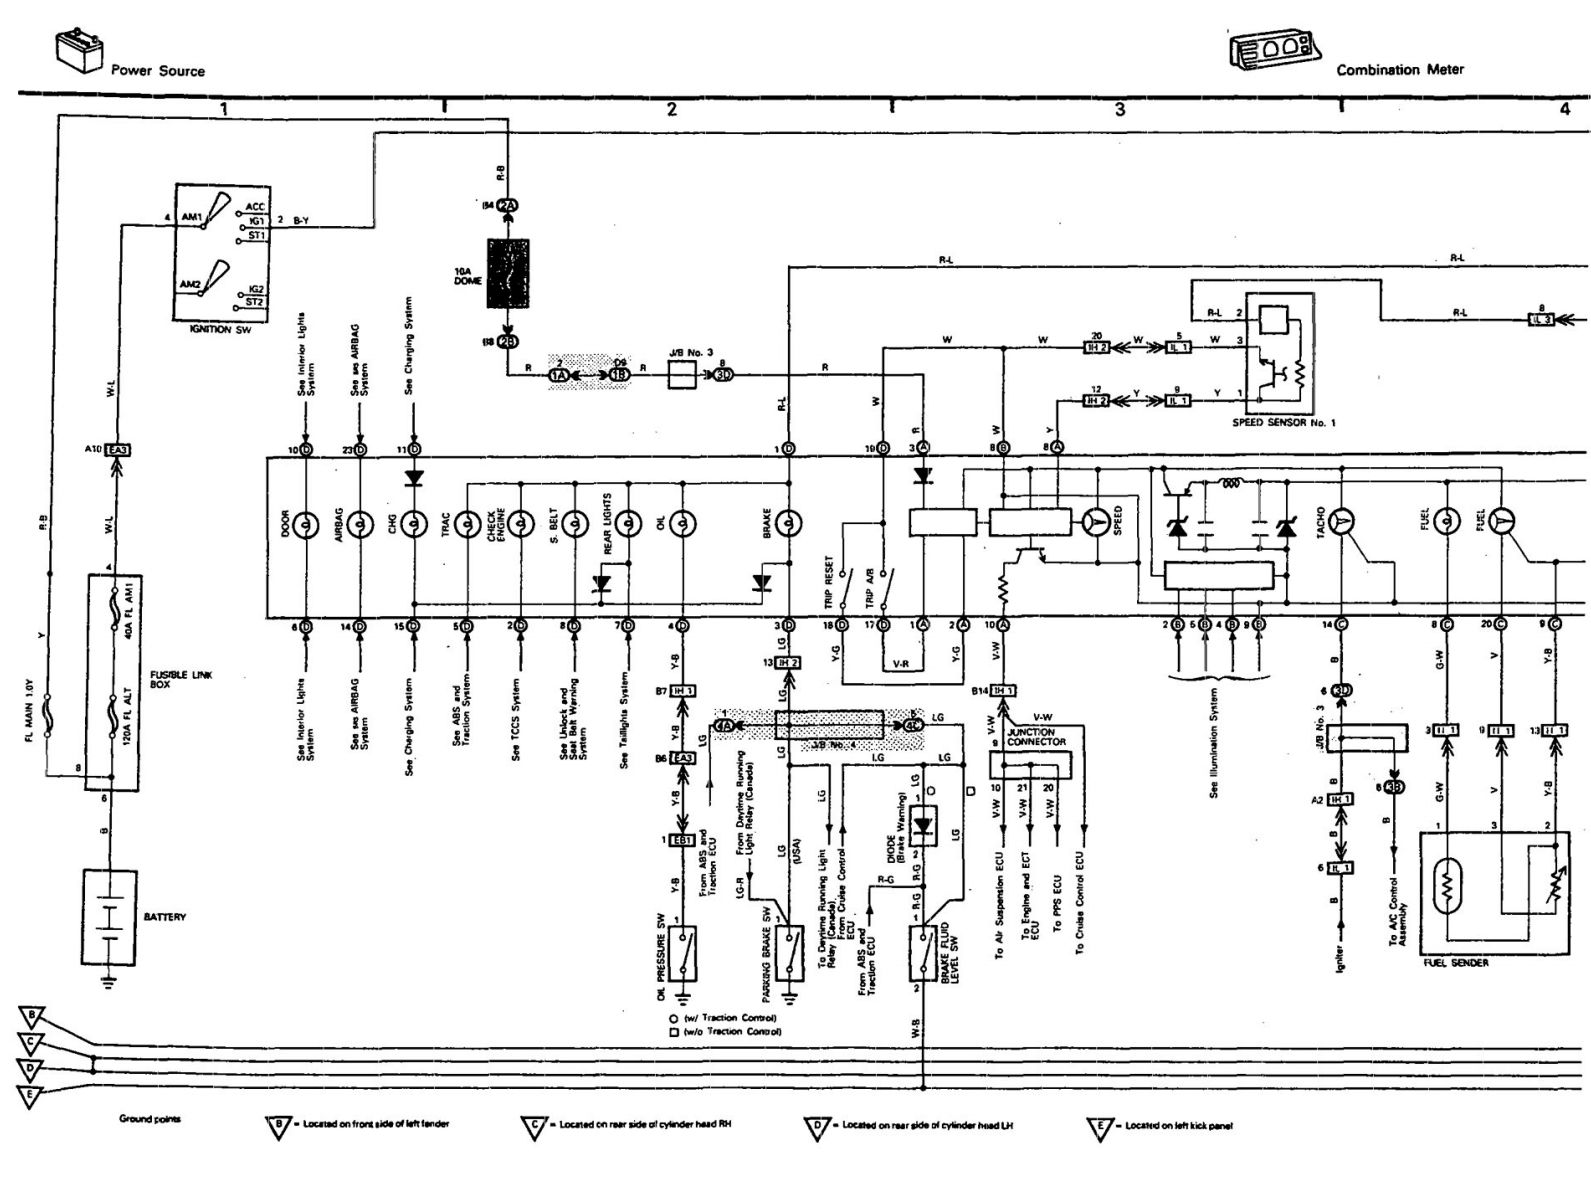 80 91_instrument_856d2d2151fa8541dc95b84608d7ff2a2006be42 lexus gs300 wiring diagram nissan 350z diagram \u2022 free wiring 2010 Buick Lacrosse Wiring-Diagram at creativeand.co